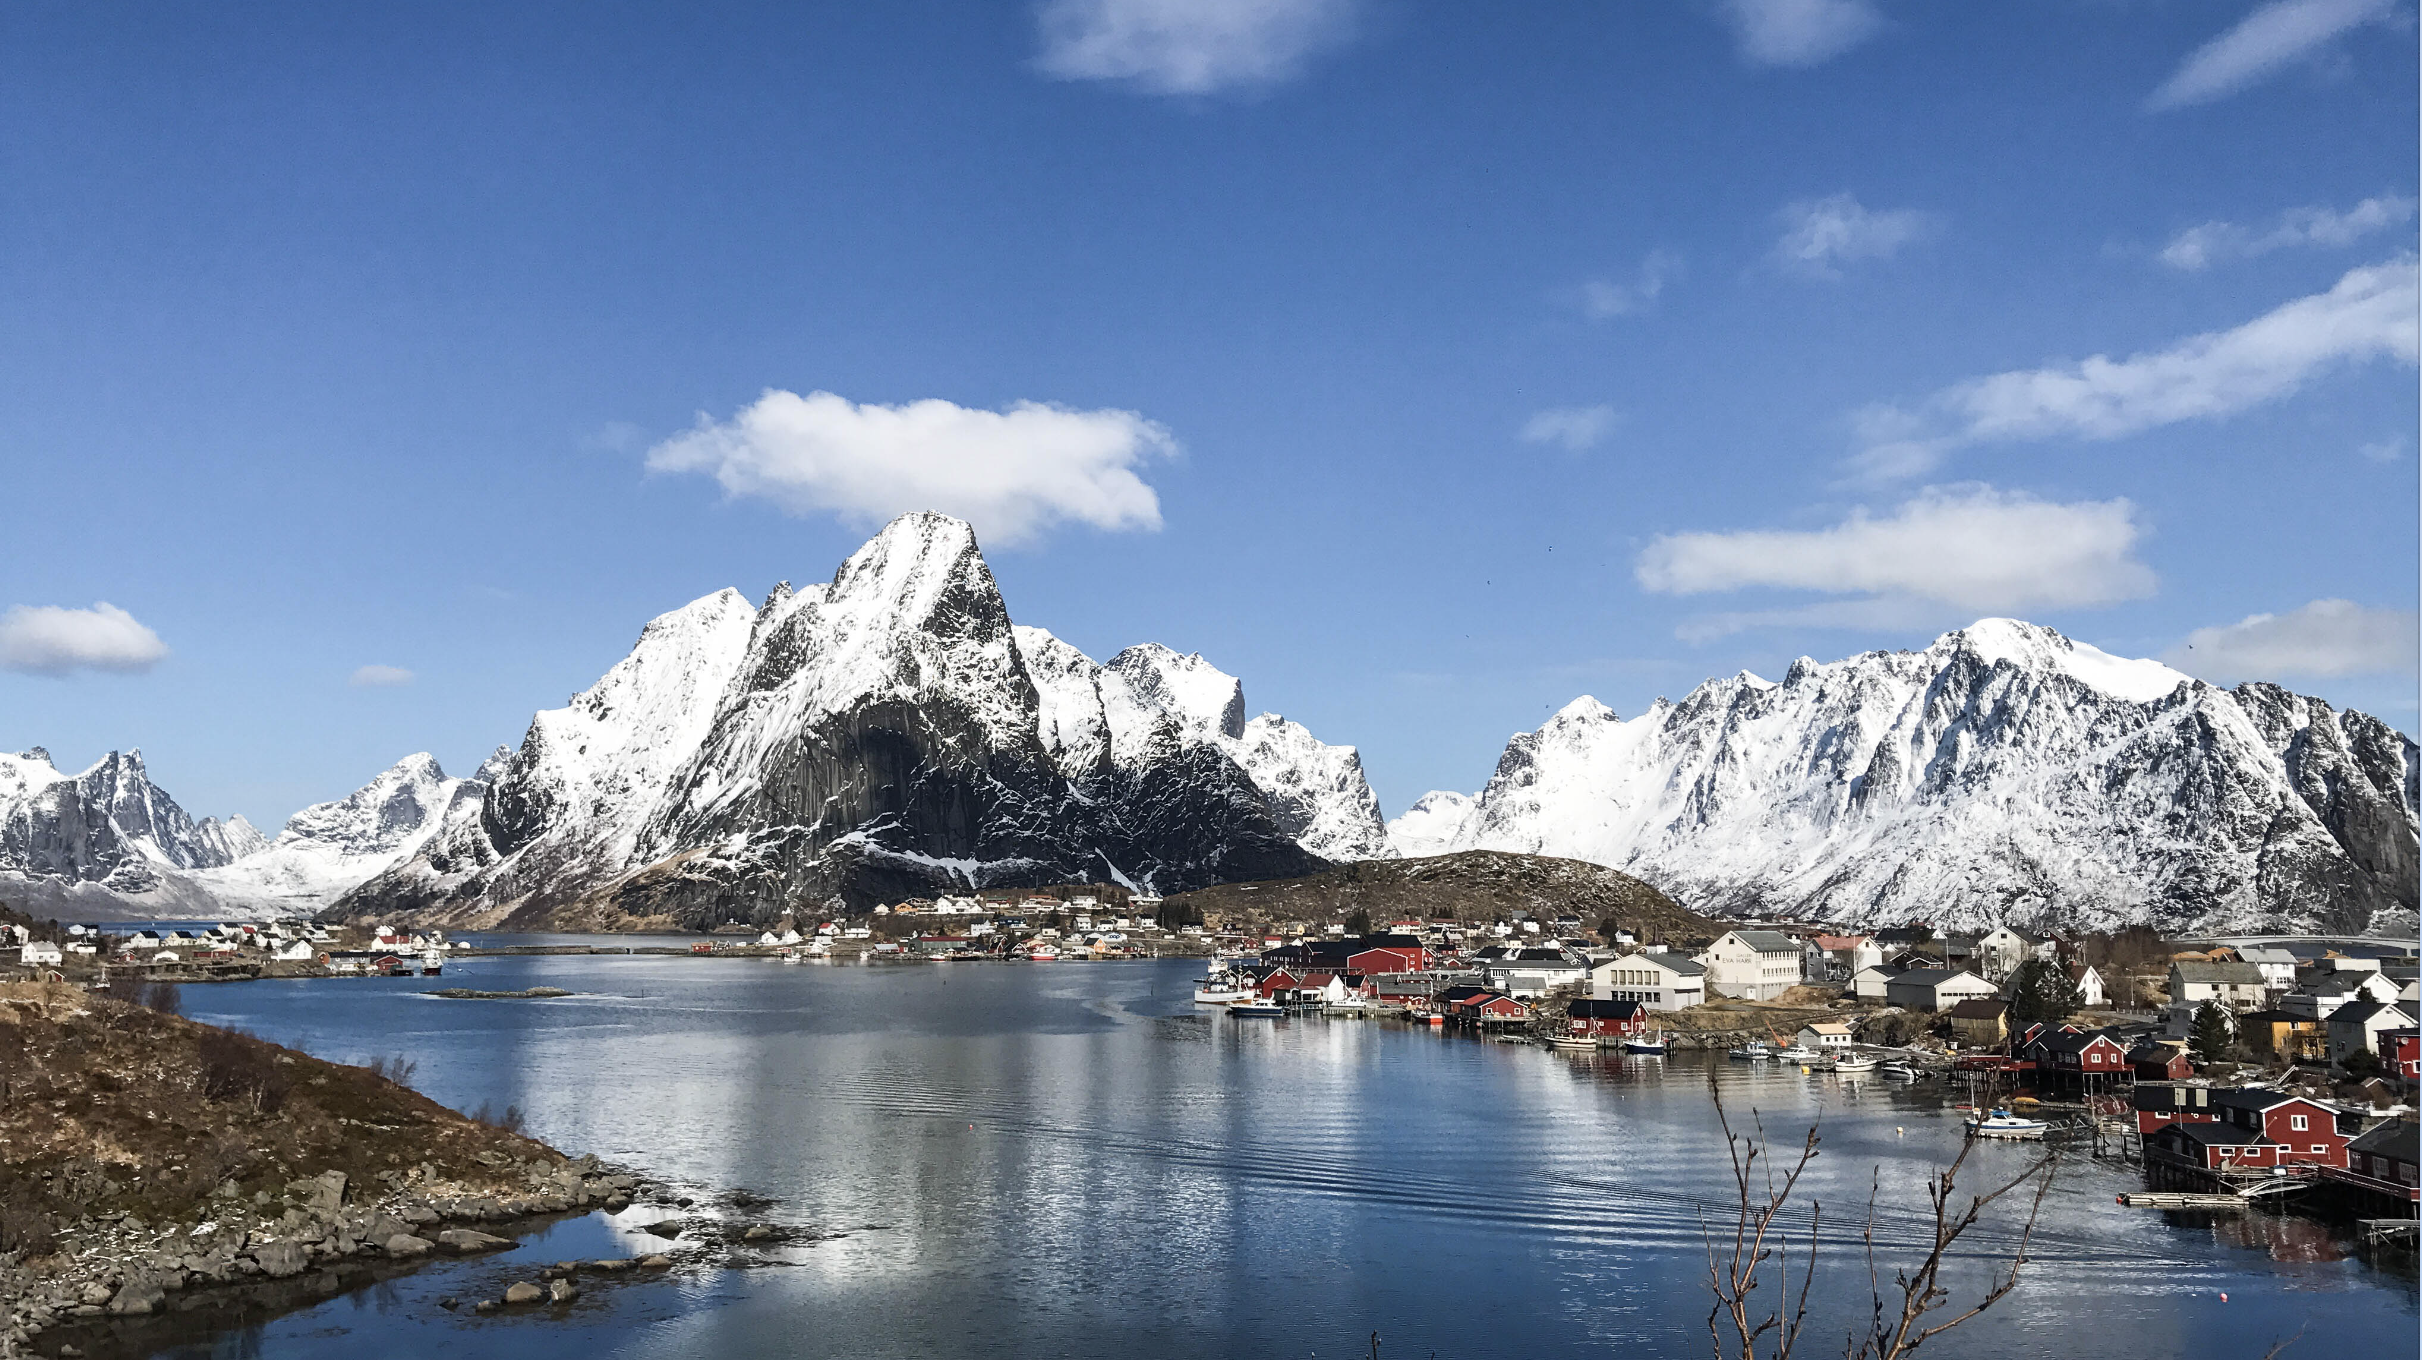 REINE IN LOFOTEN IS ONE OF THE MOST AMAZING PLACES I HAVE EVER BEEN